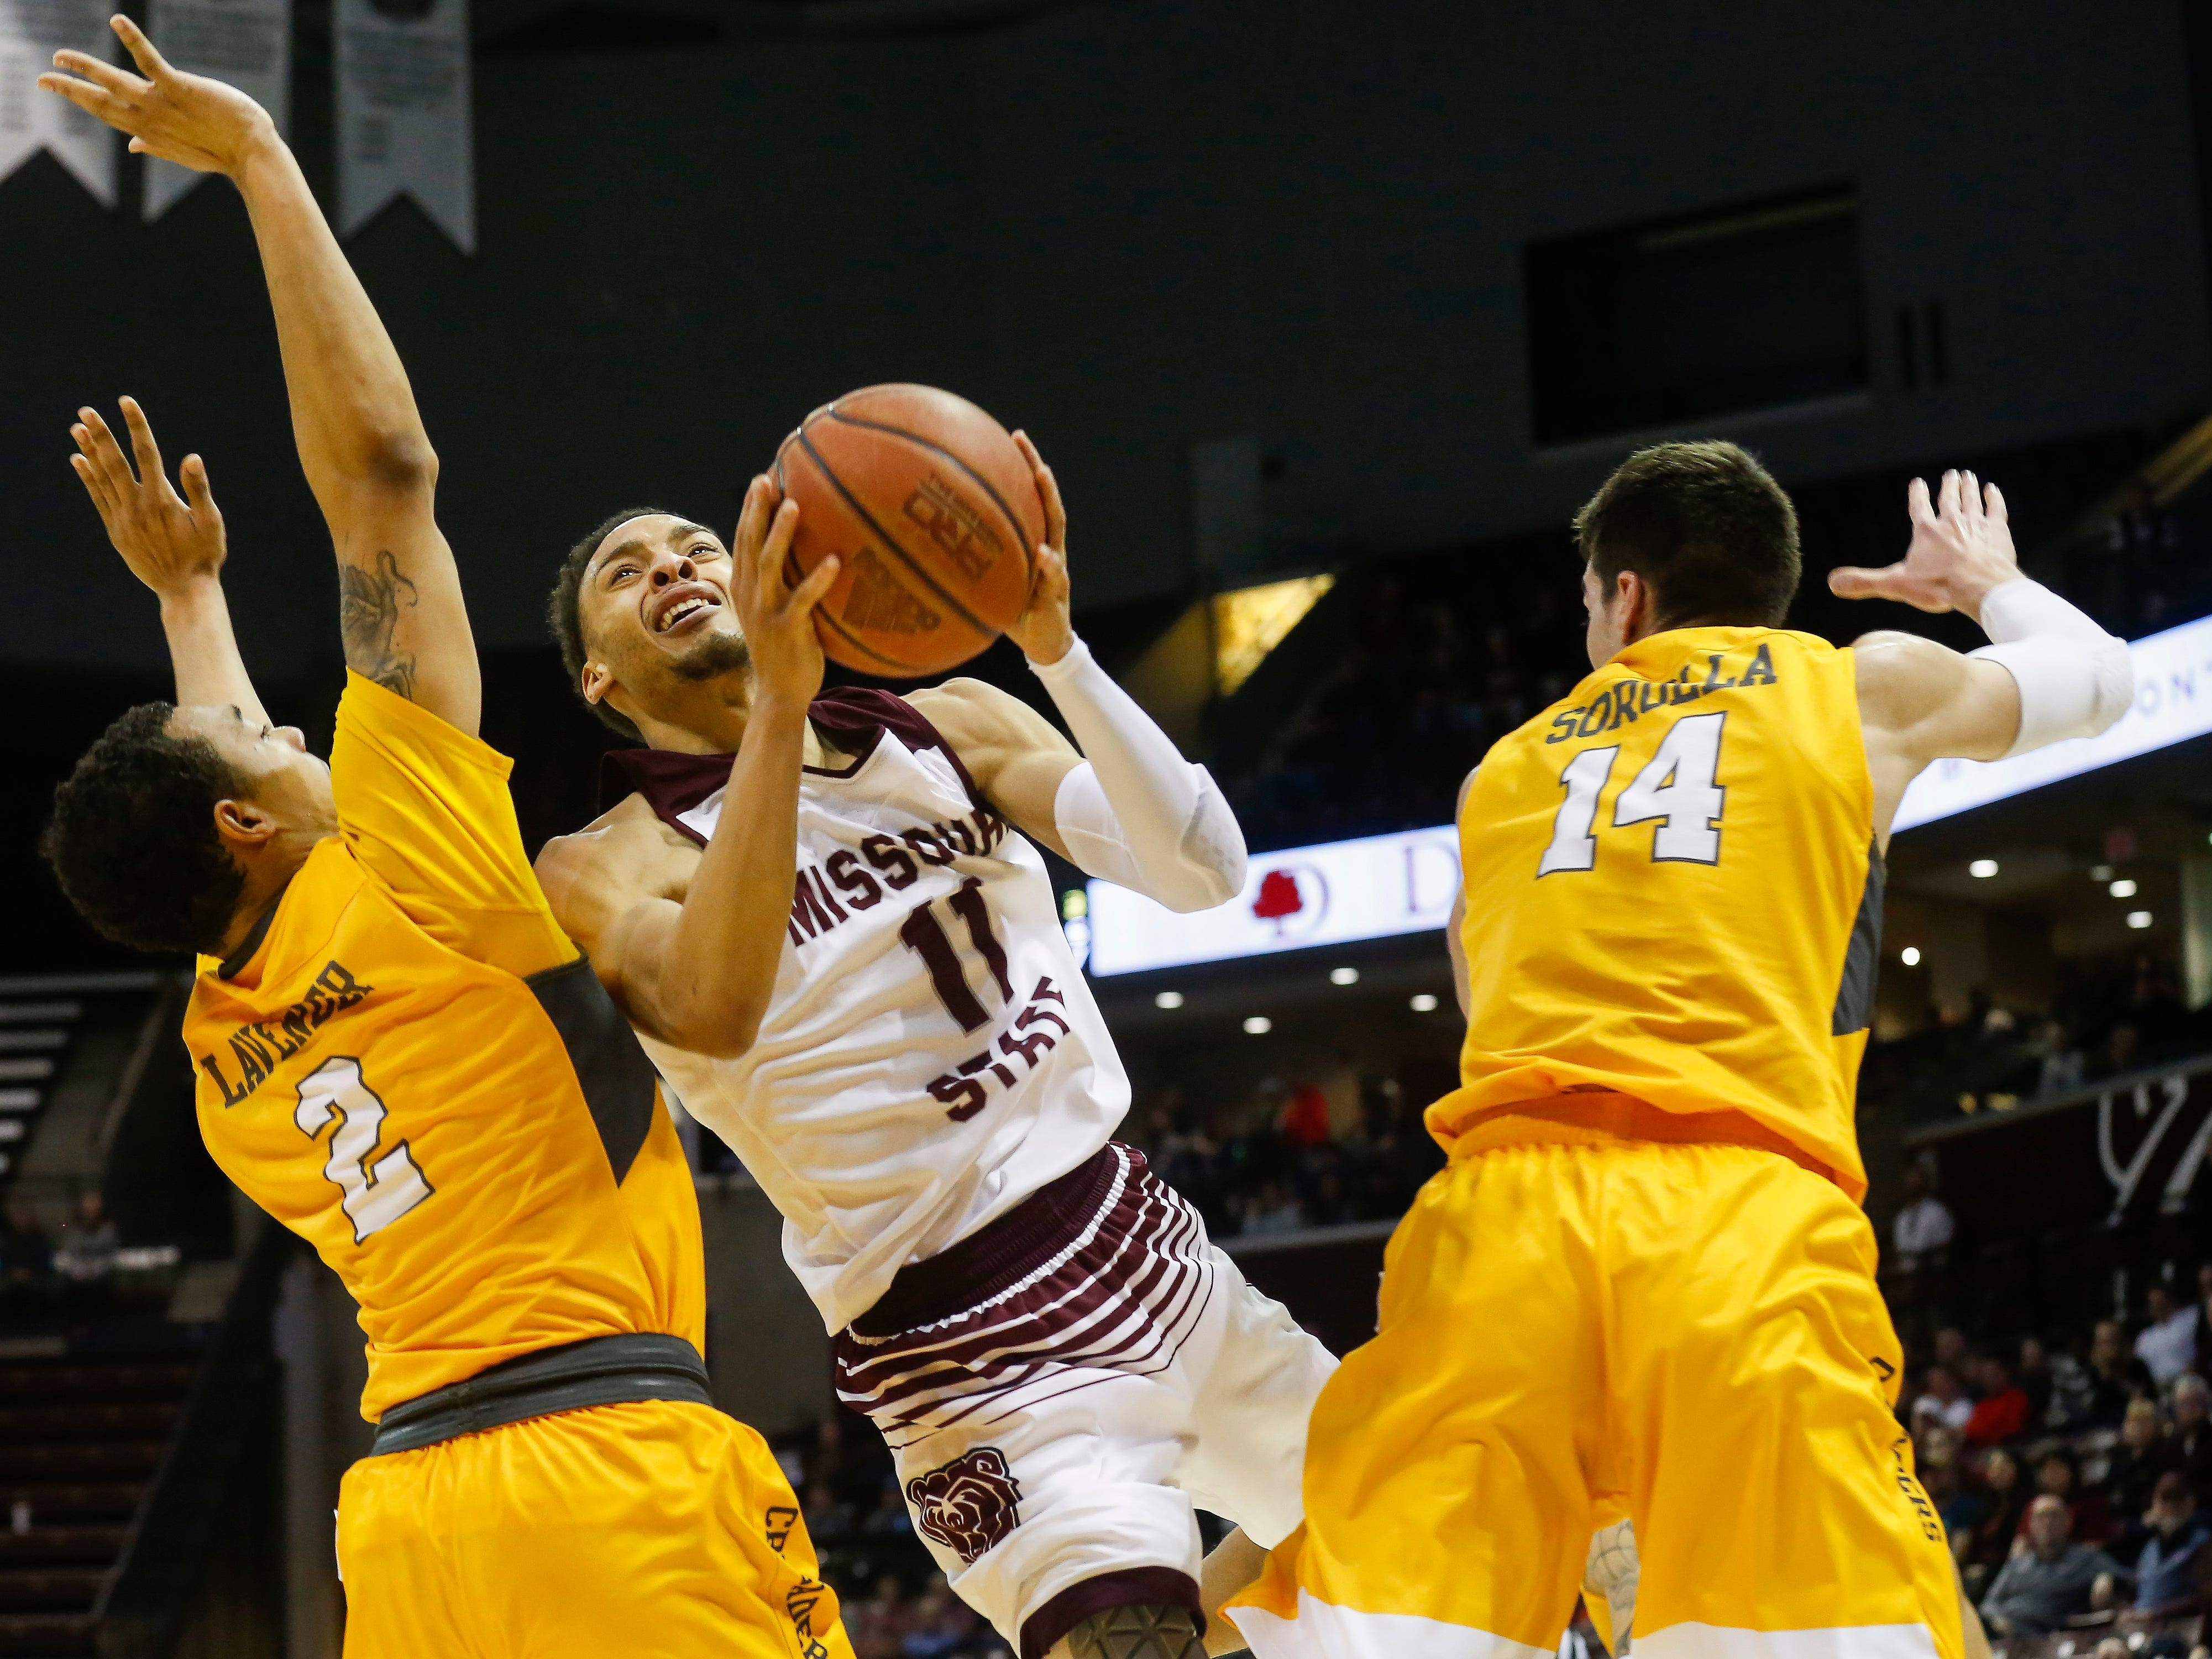 Jarred Dixon, of Missouri State University, puts up the shot during the Bears game against Valparaiso at JQH Arena on Saturday, Jan. 5, 2018.